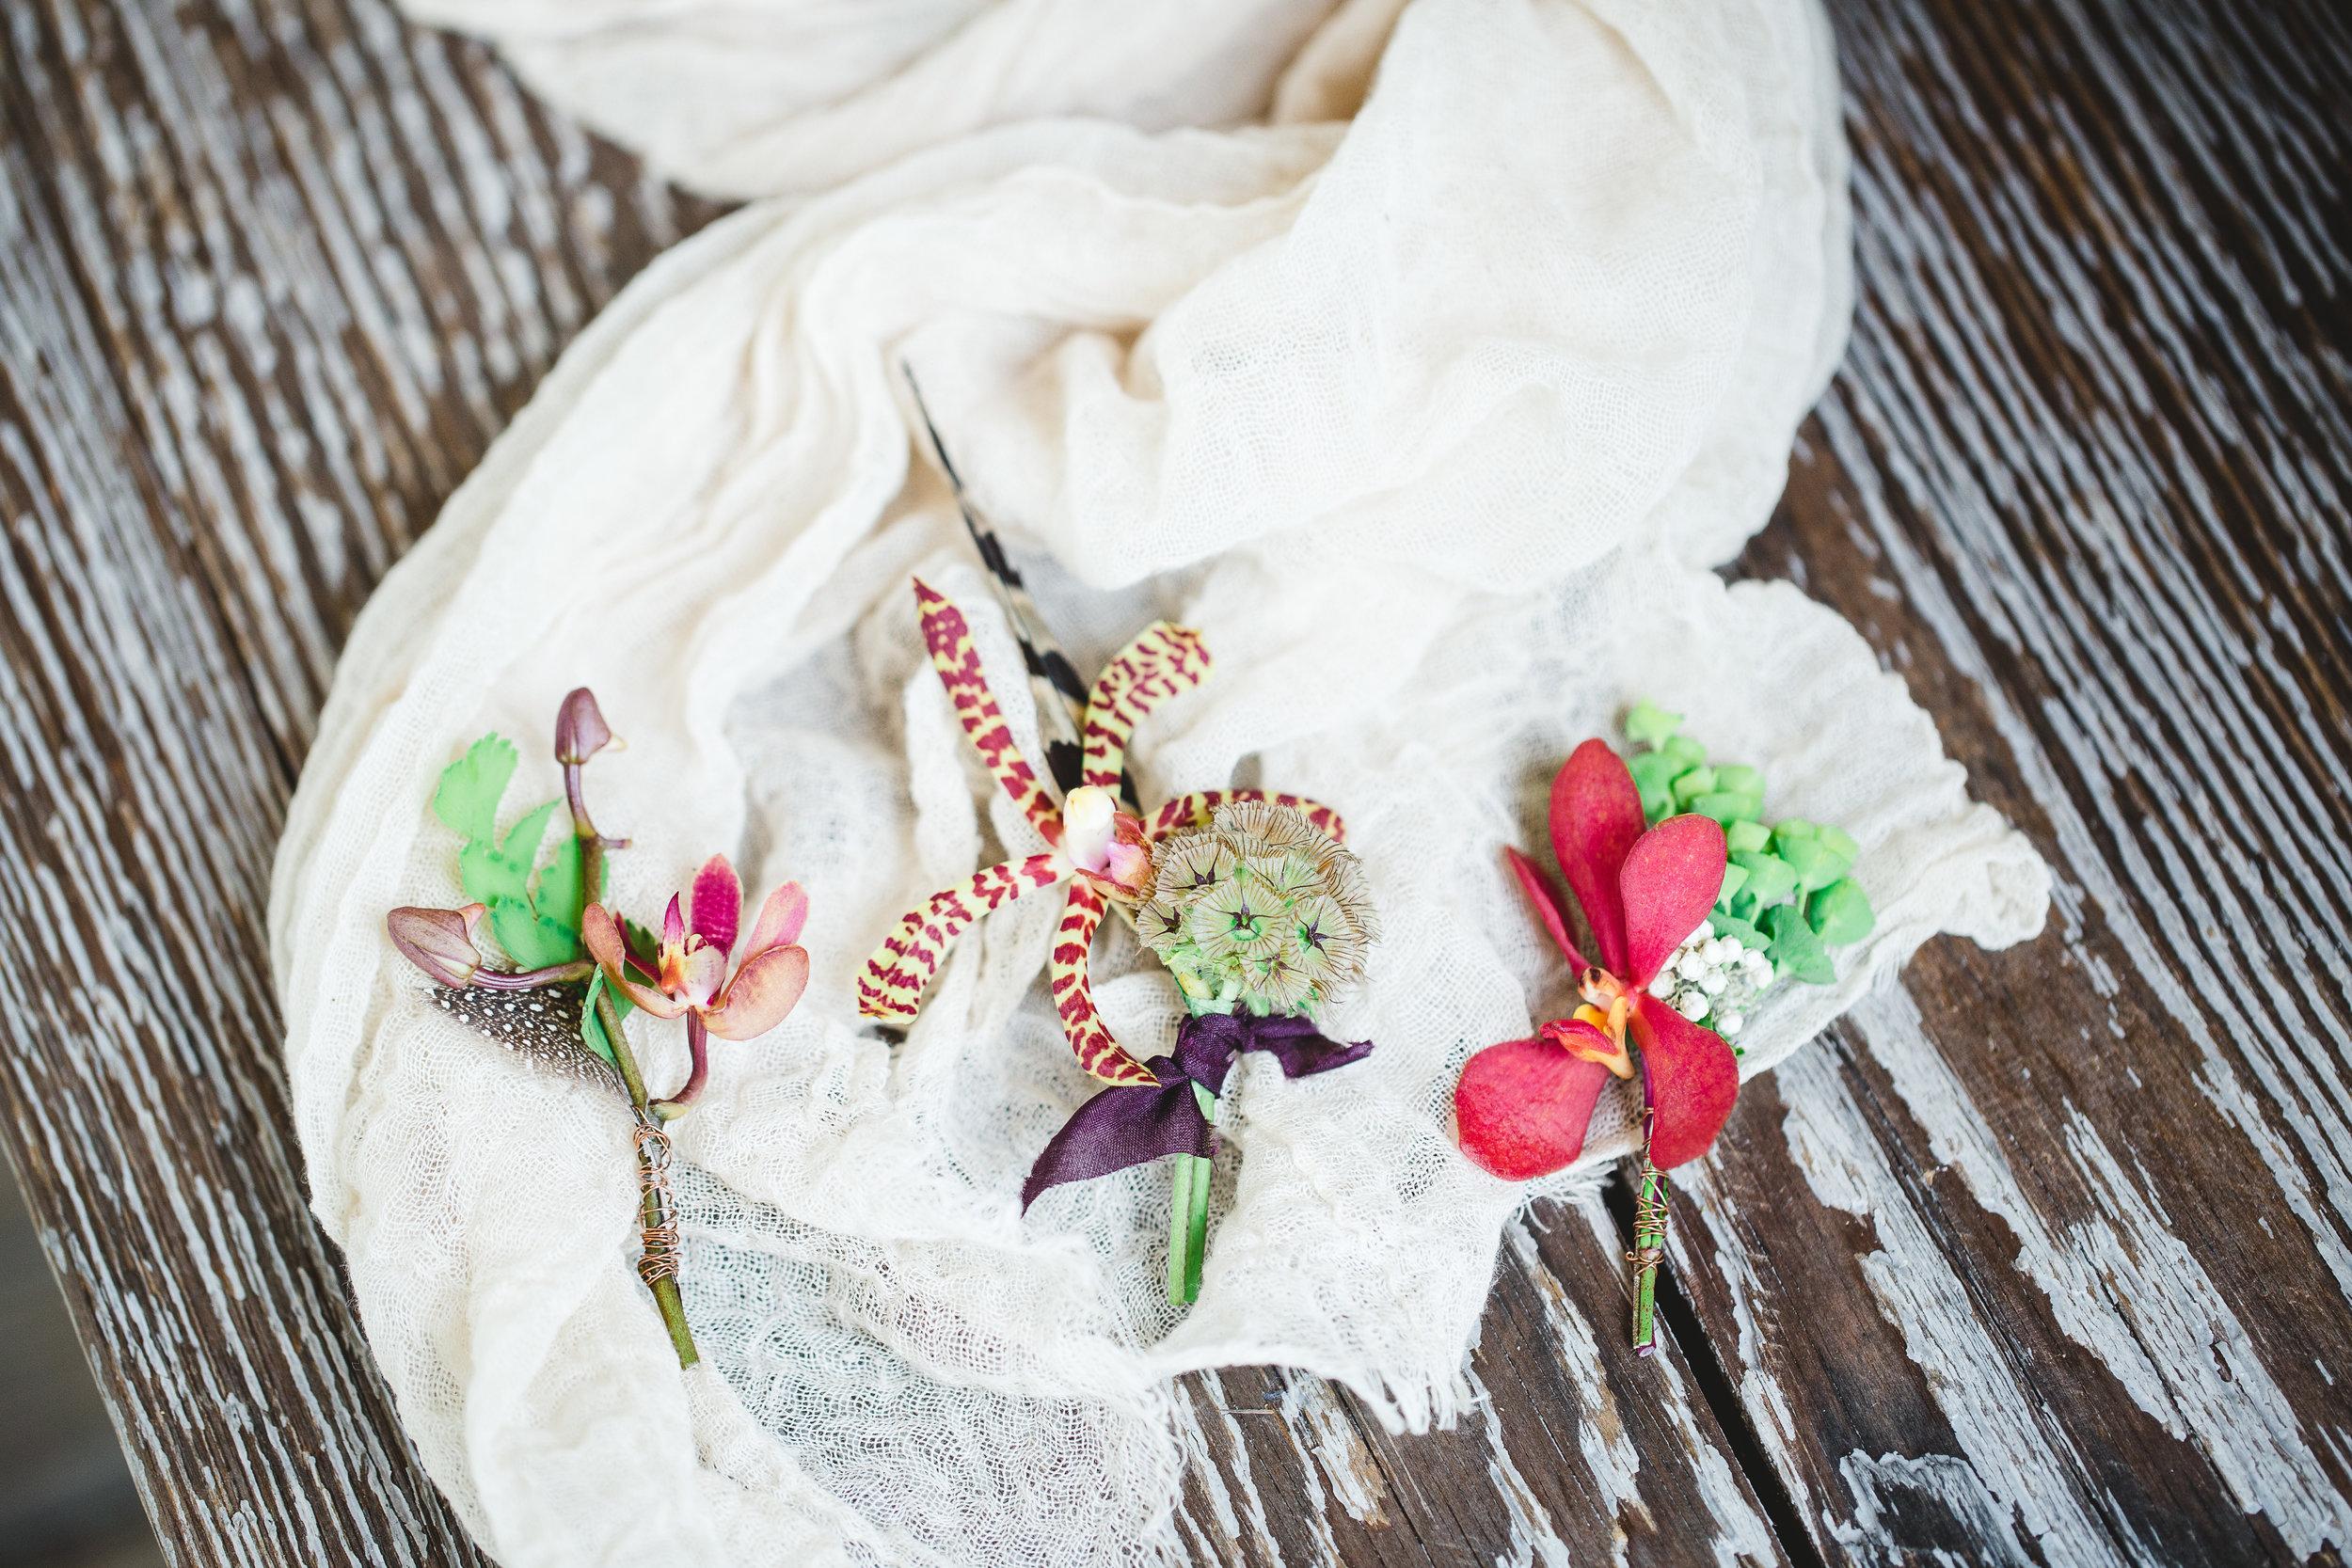 izzy-hudgins-photography-emily-burton-designs-ivory-and-beau-bridal-boutique-daughters-of-simone-sonje-jenny-yoo-bridesmaids-glamping-wedding-boho-wedding-outdoor-wedding-coldwater-gardens-wedding-savannah-bridal-boutique-savannah-wedding-planner-4.jpg